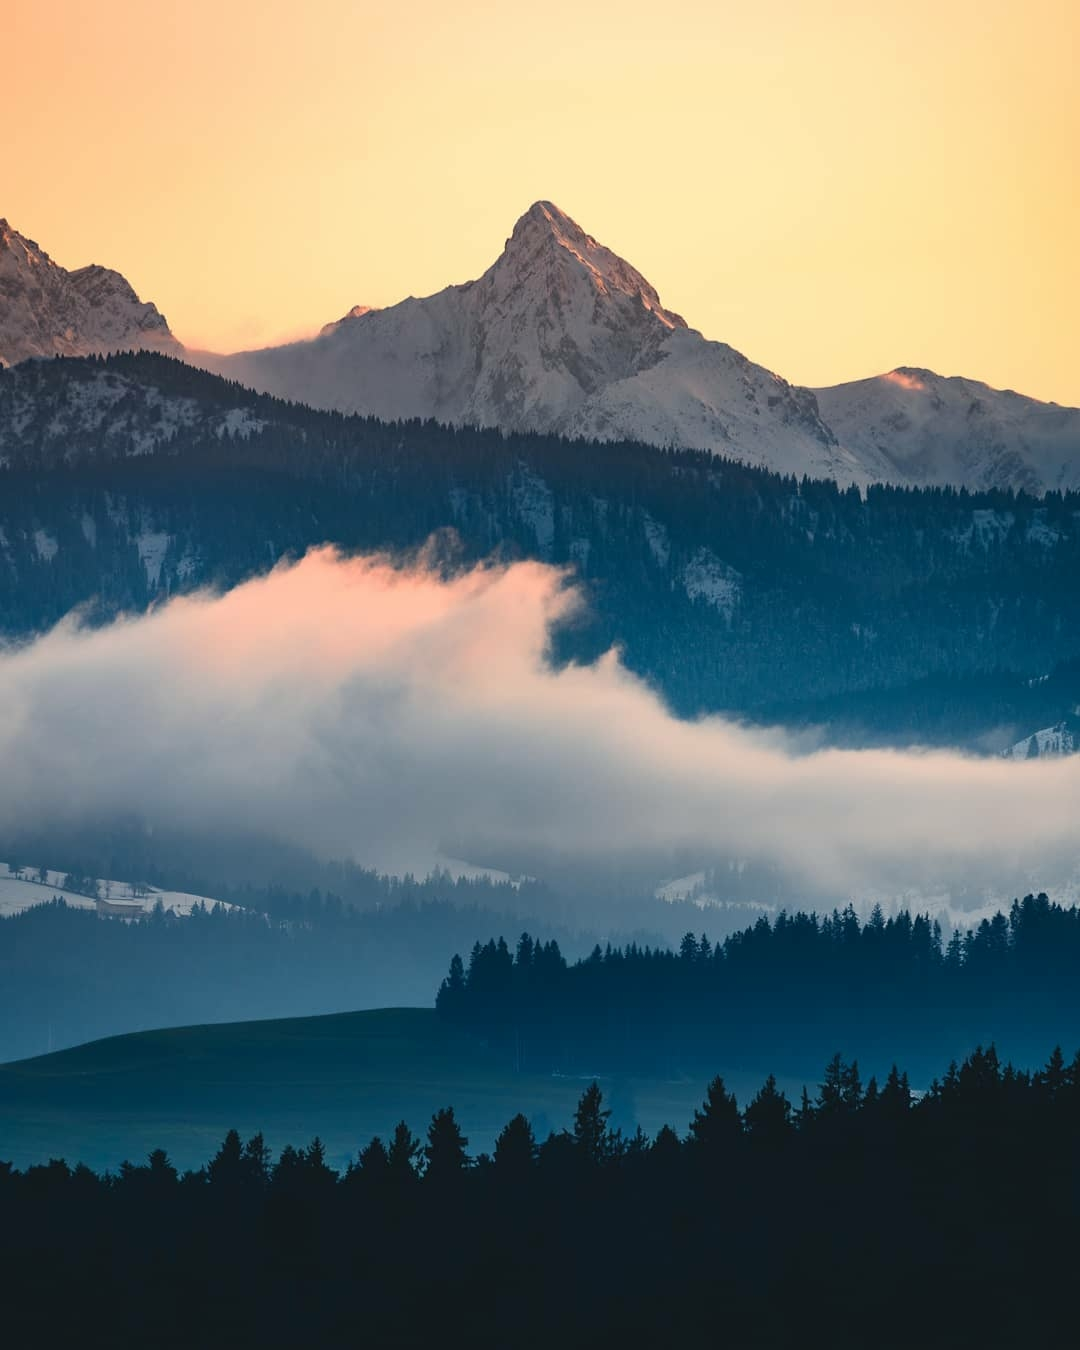 misty mountain scene